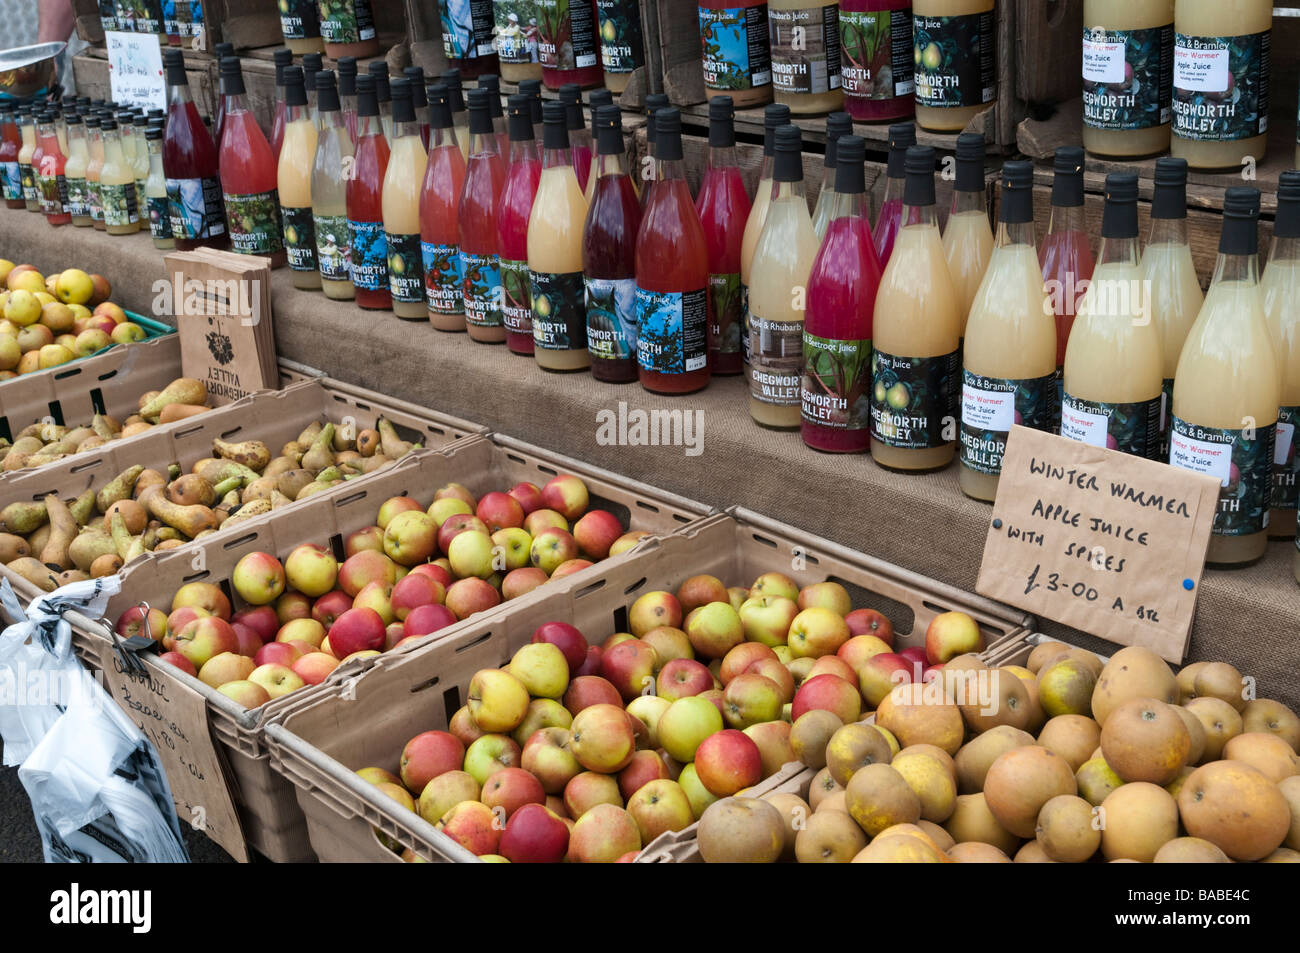 Organic English apples for sale at farmers market, London England UK - Stock Image